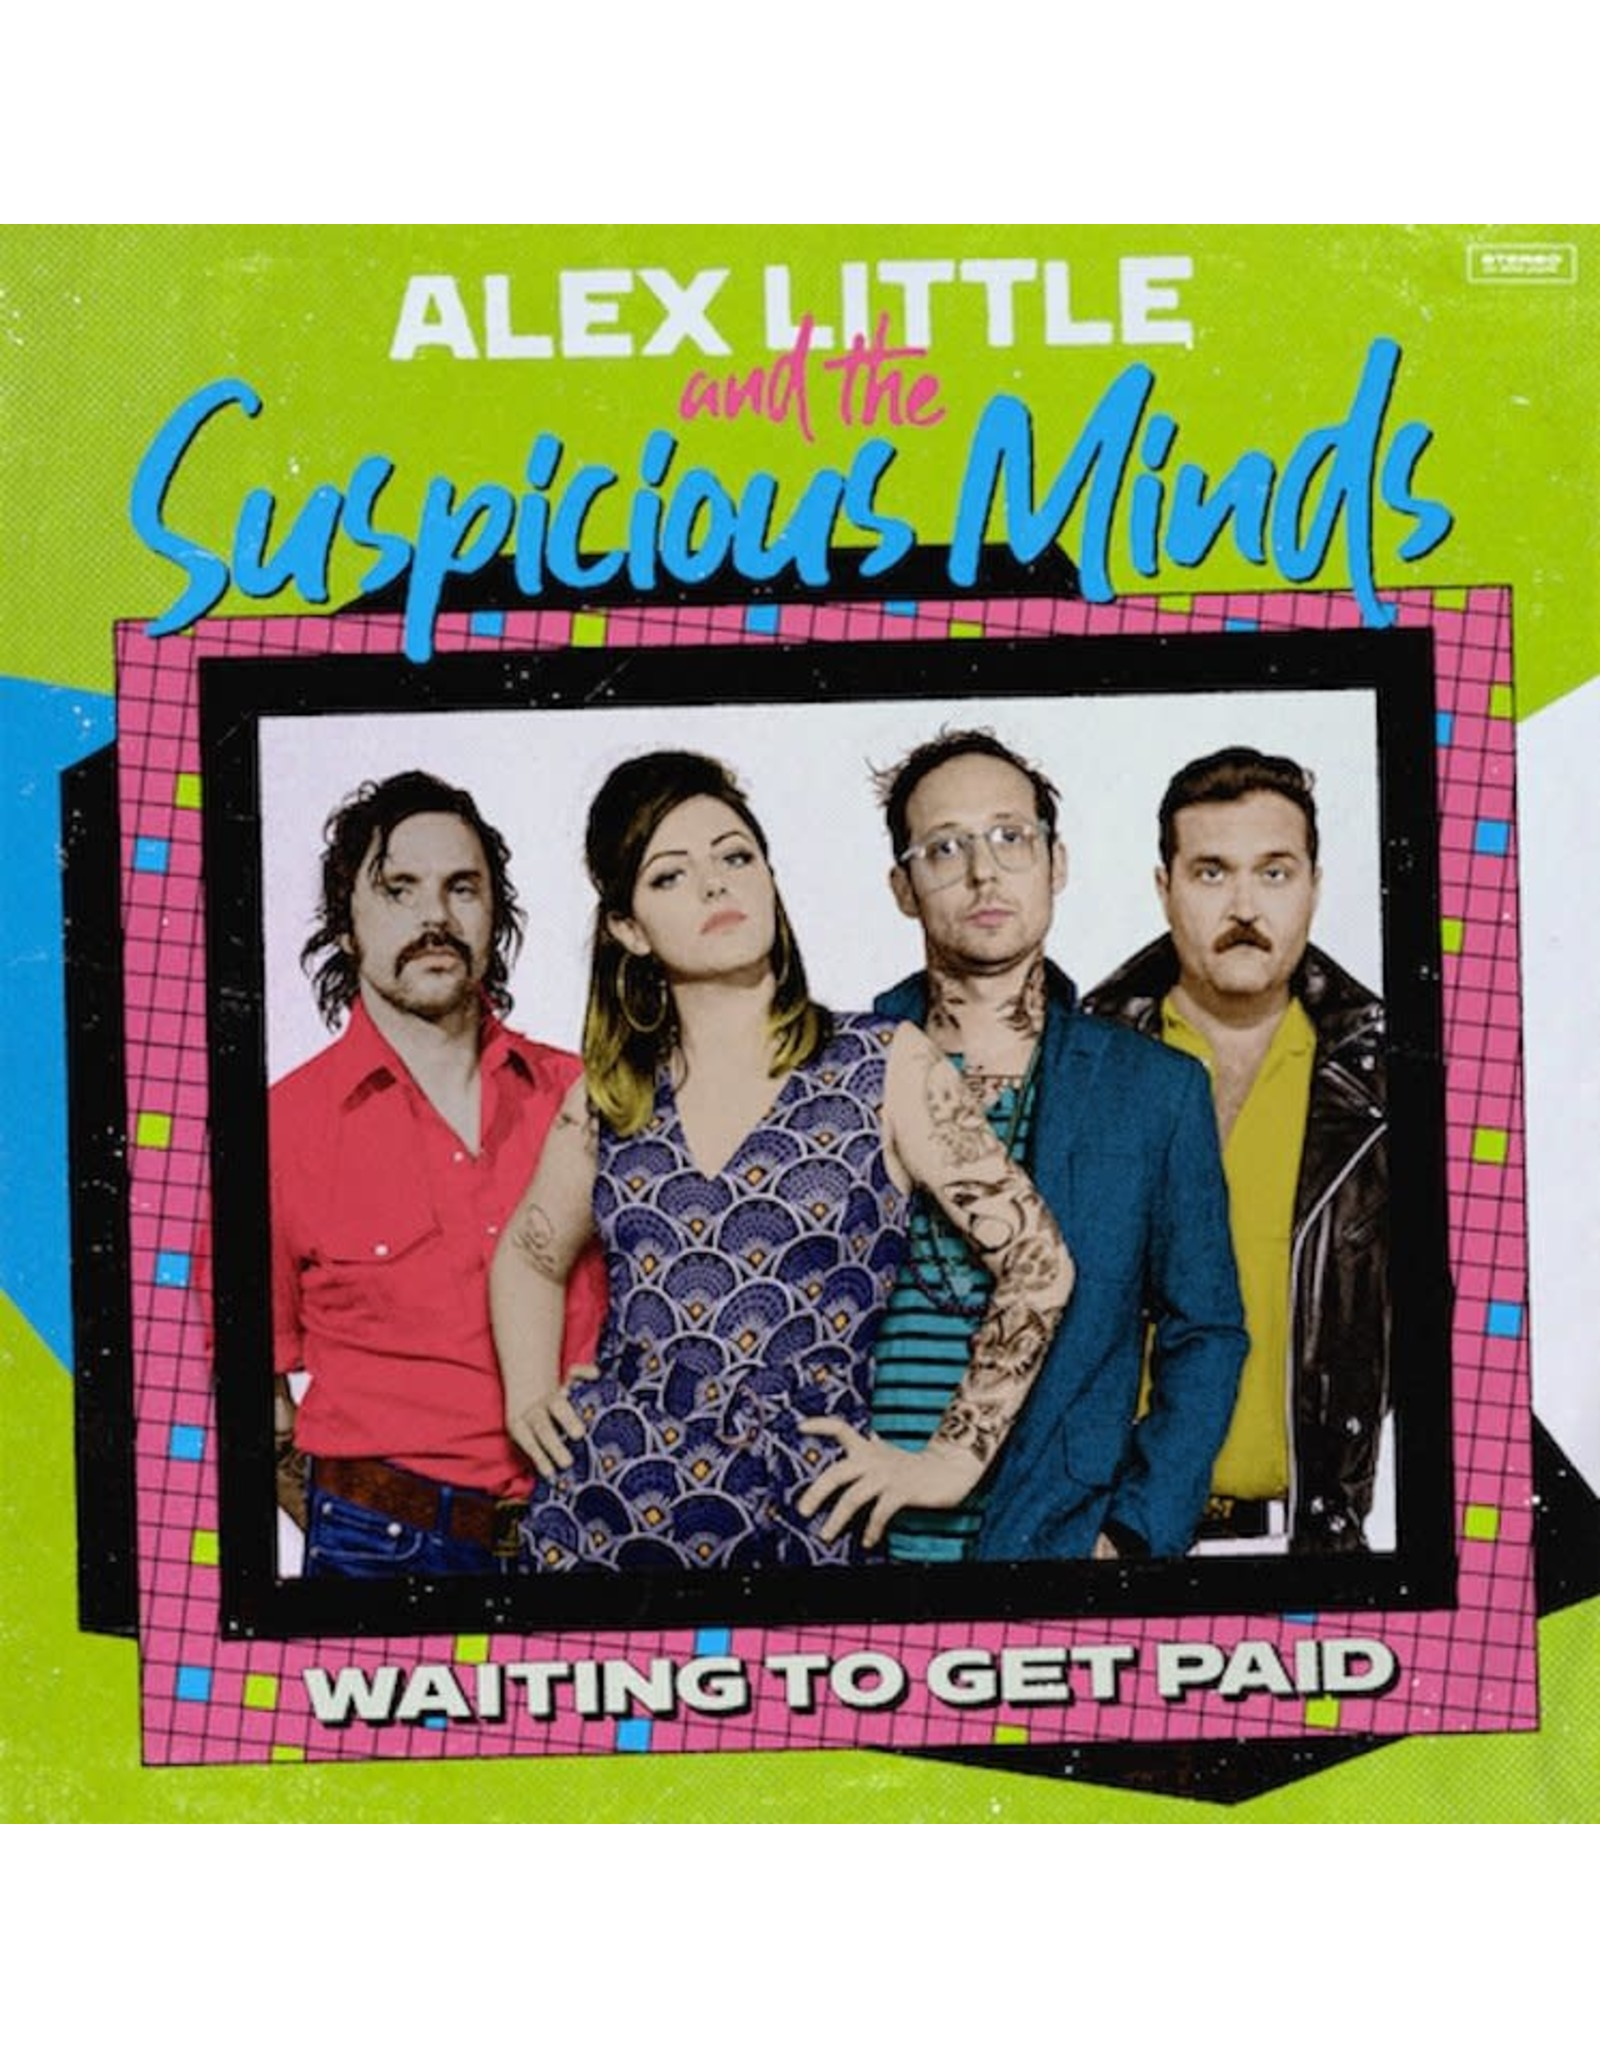 Little, Alex And Suspicious Minds - Waiting To Get Paid LP